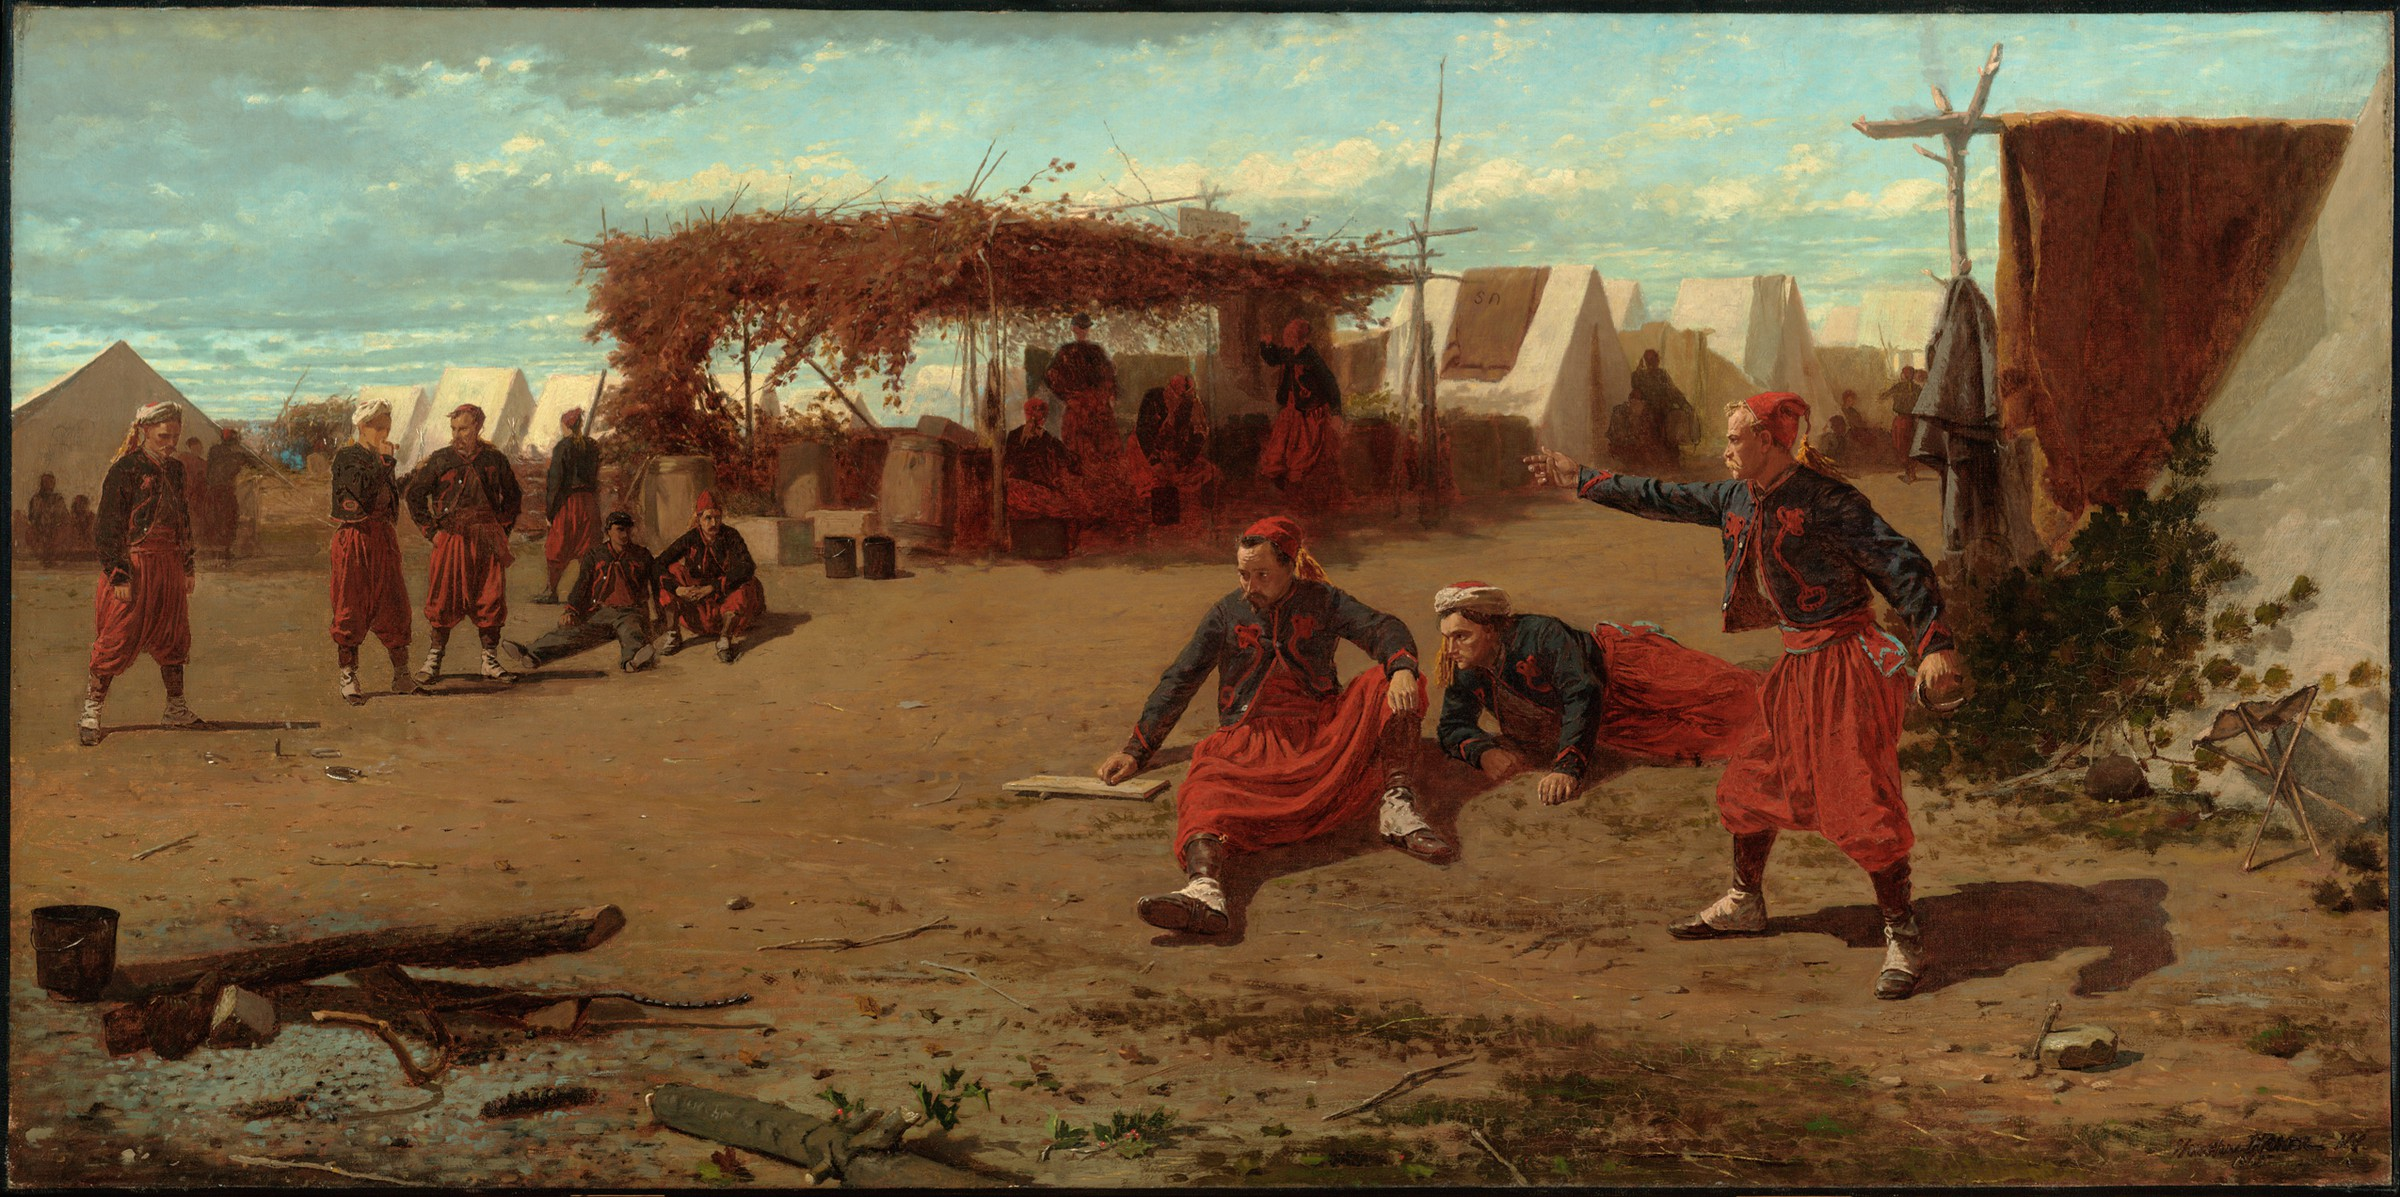 A painting showing a group of soldiers during a leisurely time playing a game of quoits, their baggy pants and filigreed jackets identify them as members of the 5th New York Volunteer Infantry.